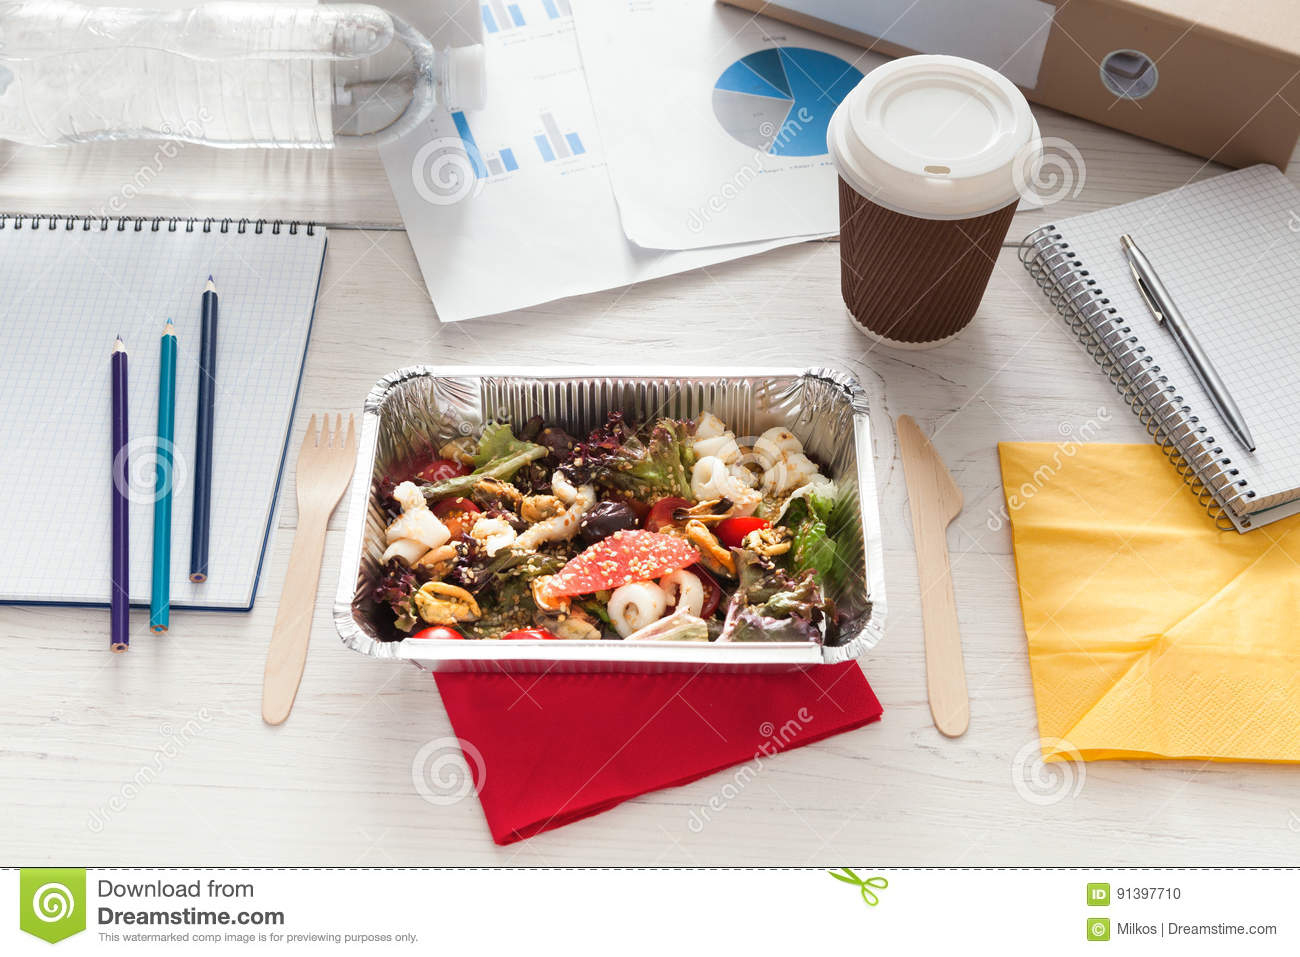 Healthy Business Lunch Snack In Office Vegetable Salad Stock Photo